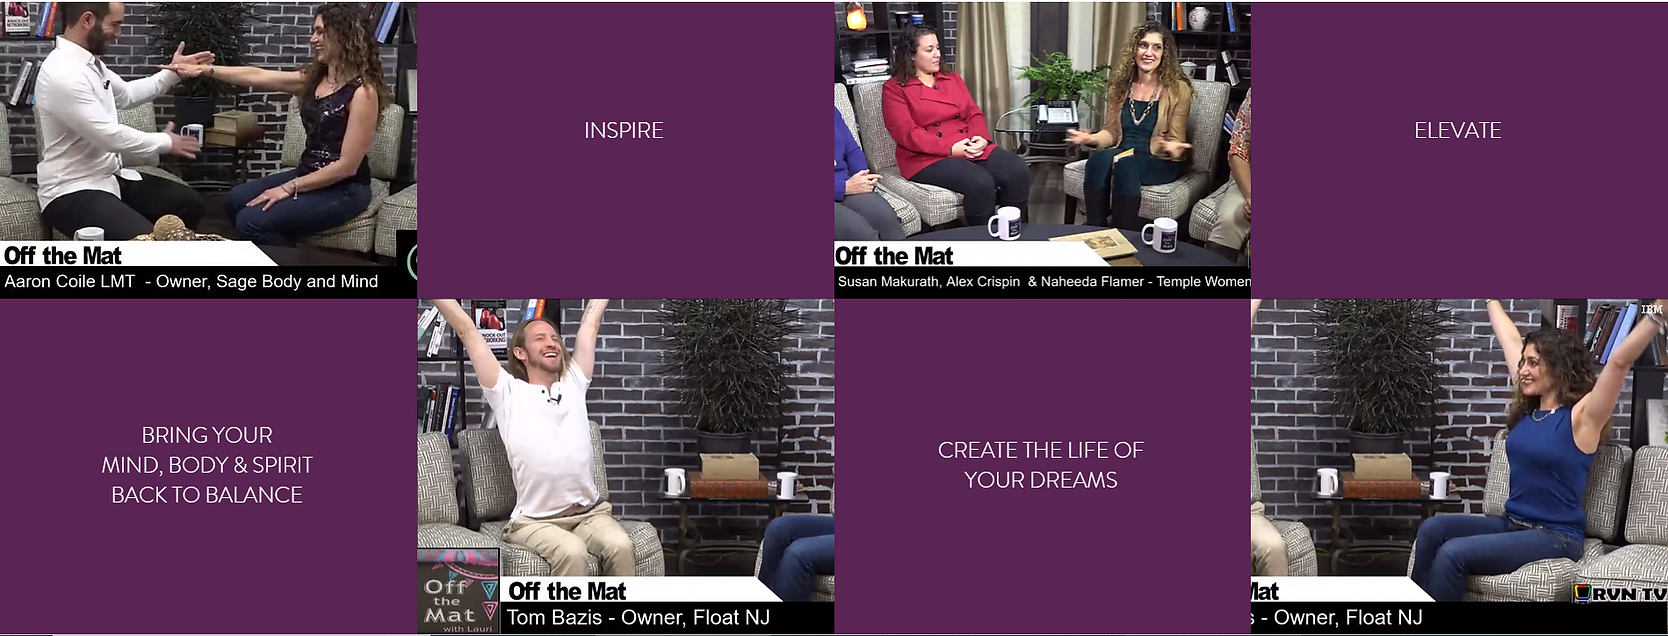 Inspire, Creae the Life of Your Dreams, Bring Your Mind, Body & Spirit Back to Balance